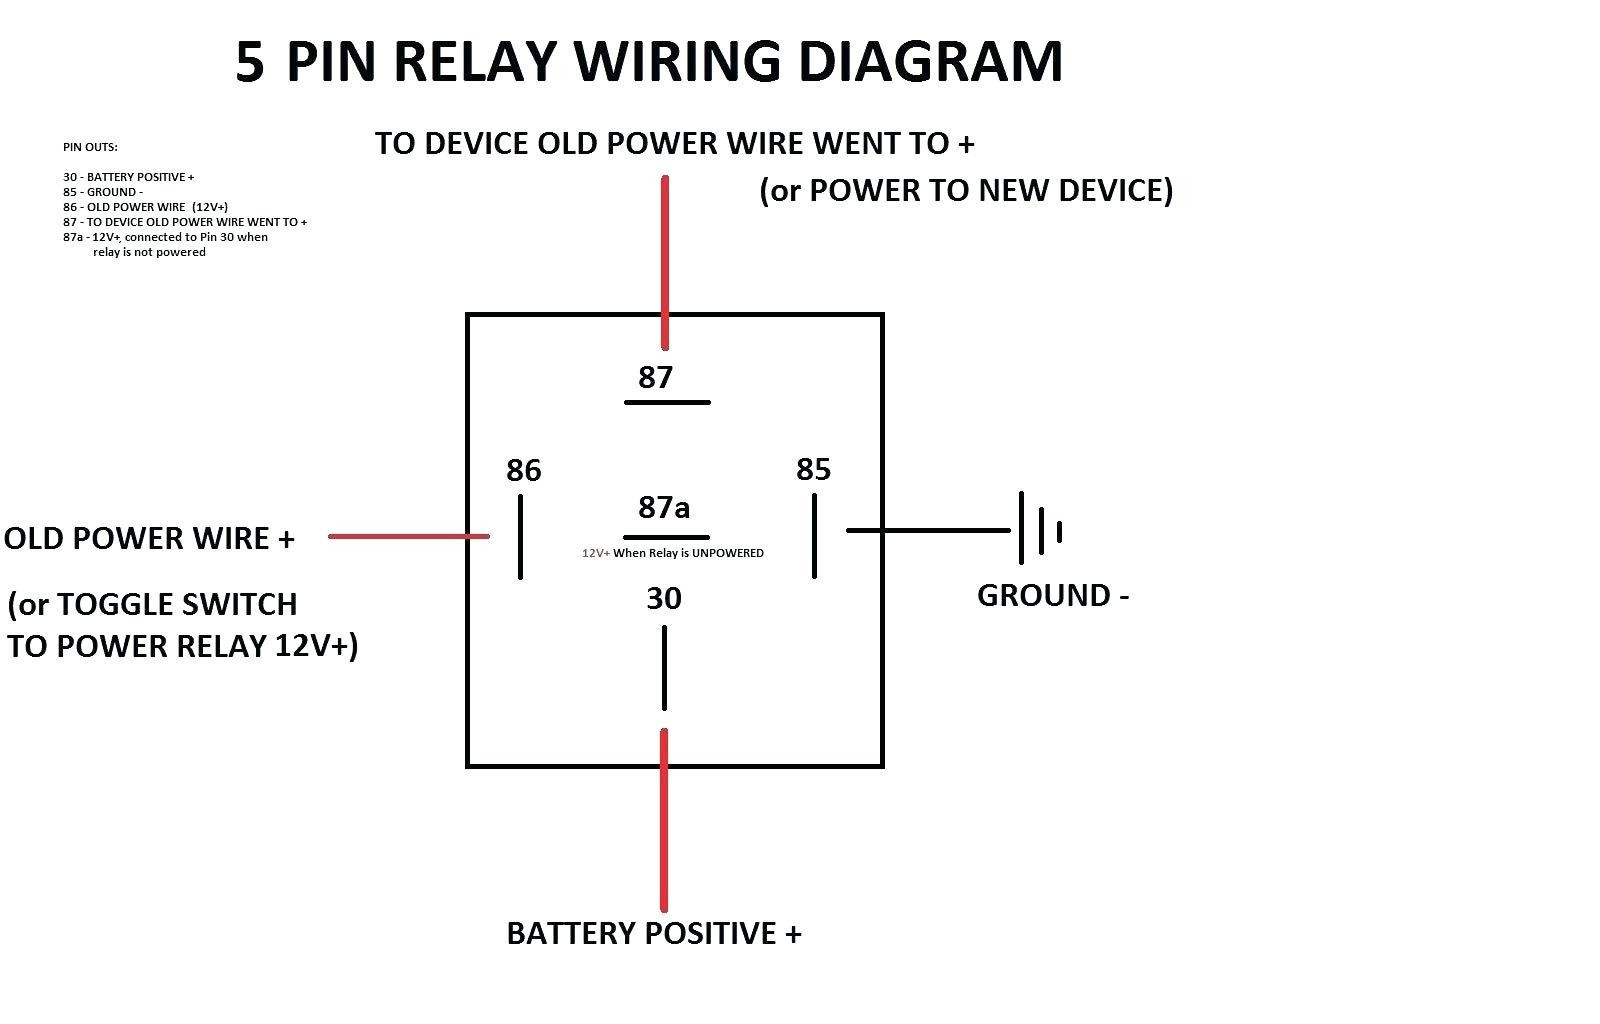 Automotive Relay Wiring Diagram Afif At Roc Grp Org Lively